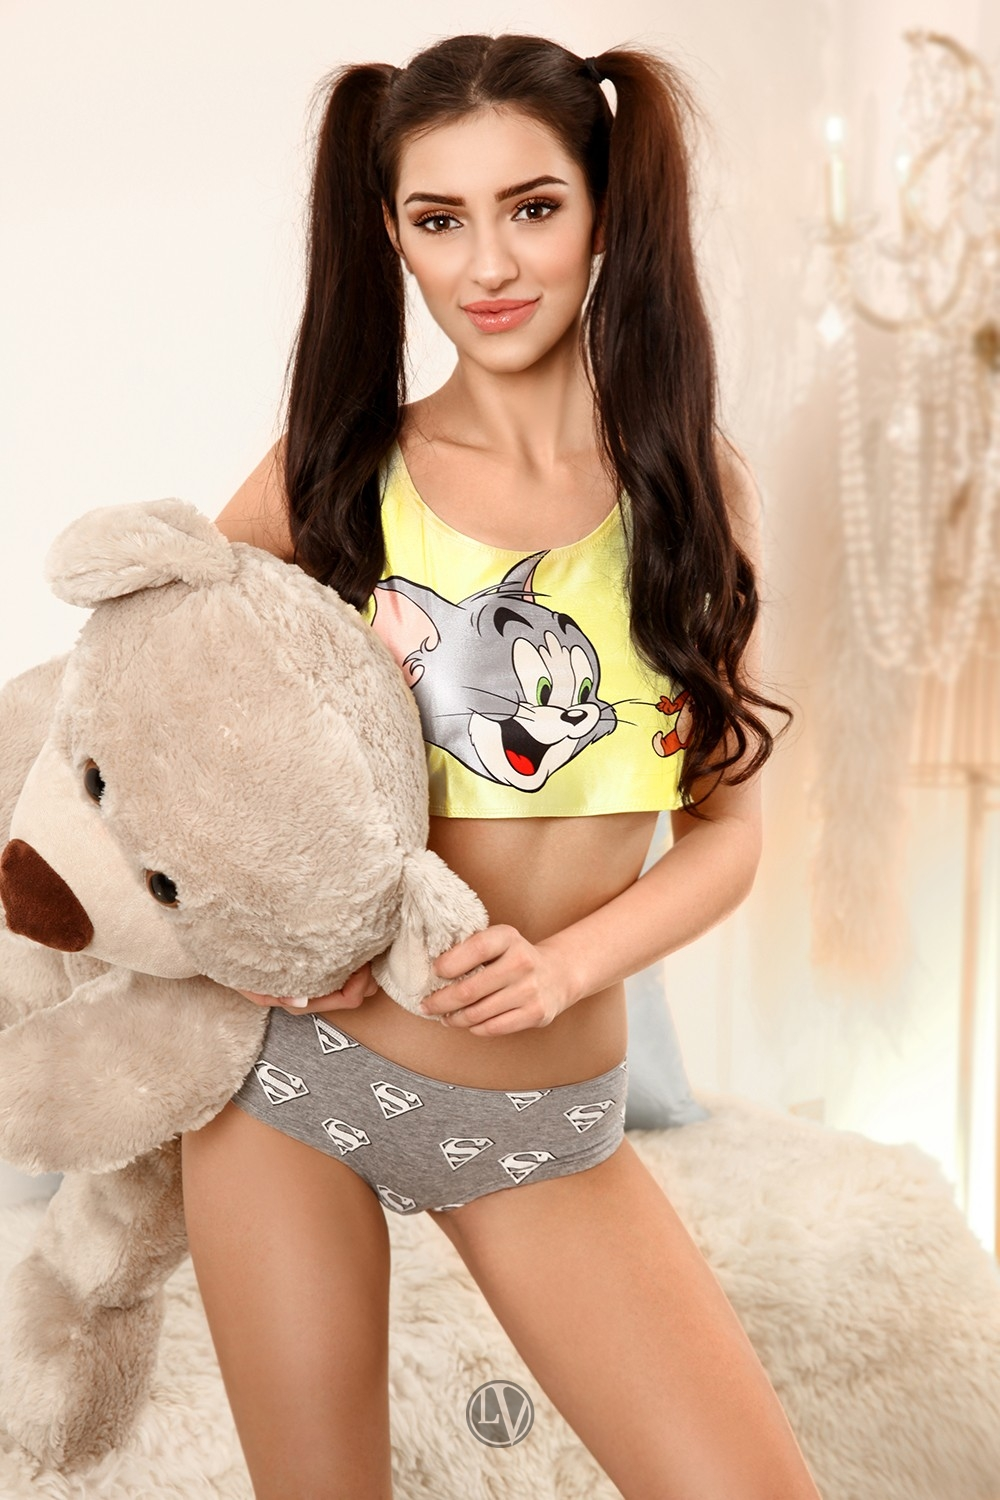 Young escort Wren in her night wear holding a teddy.